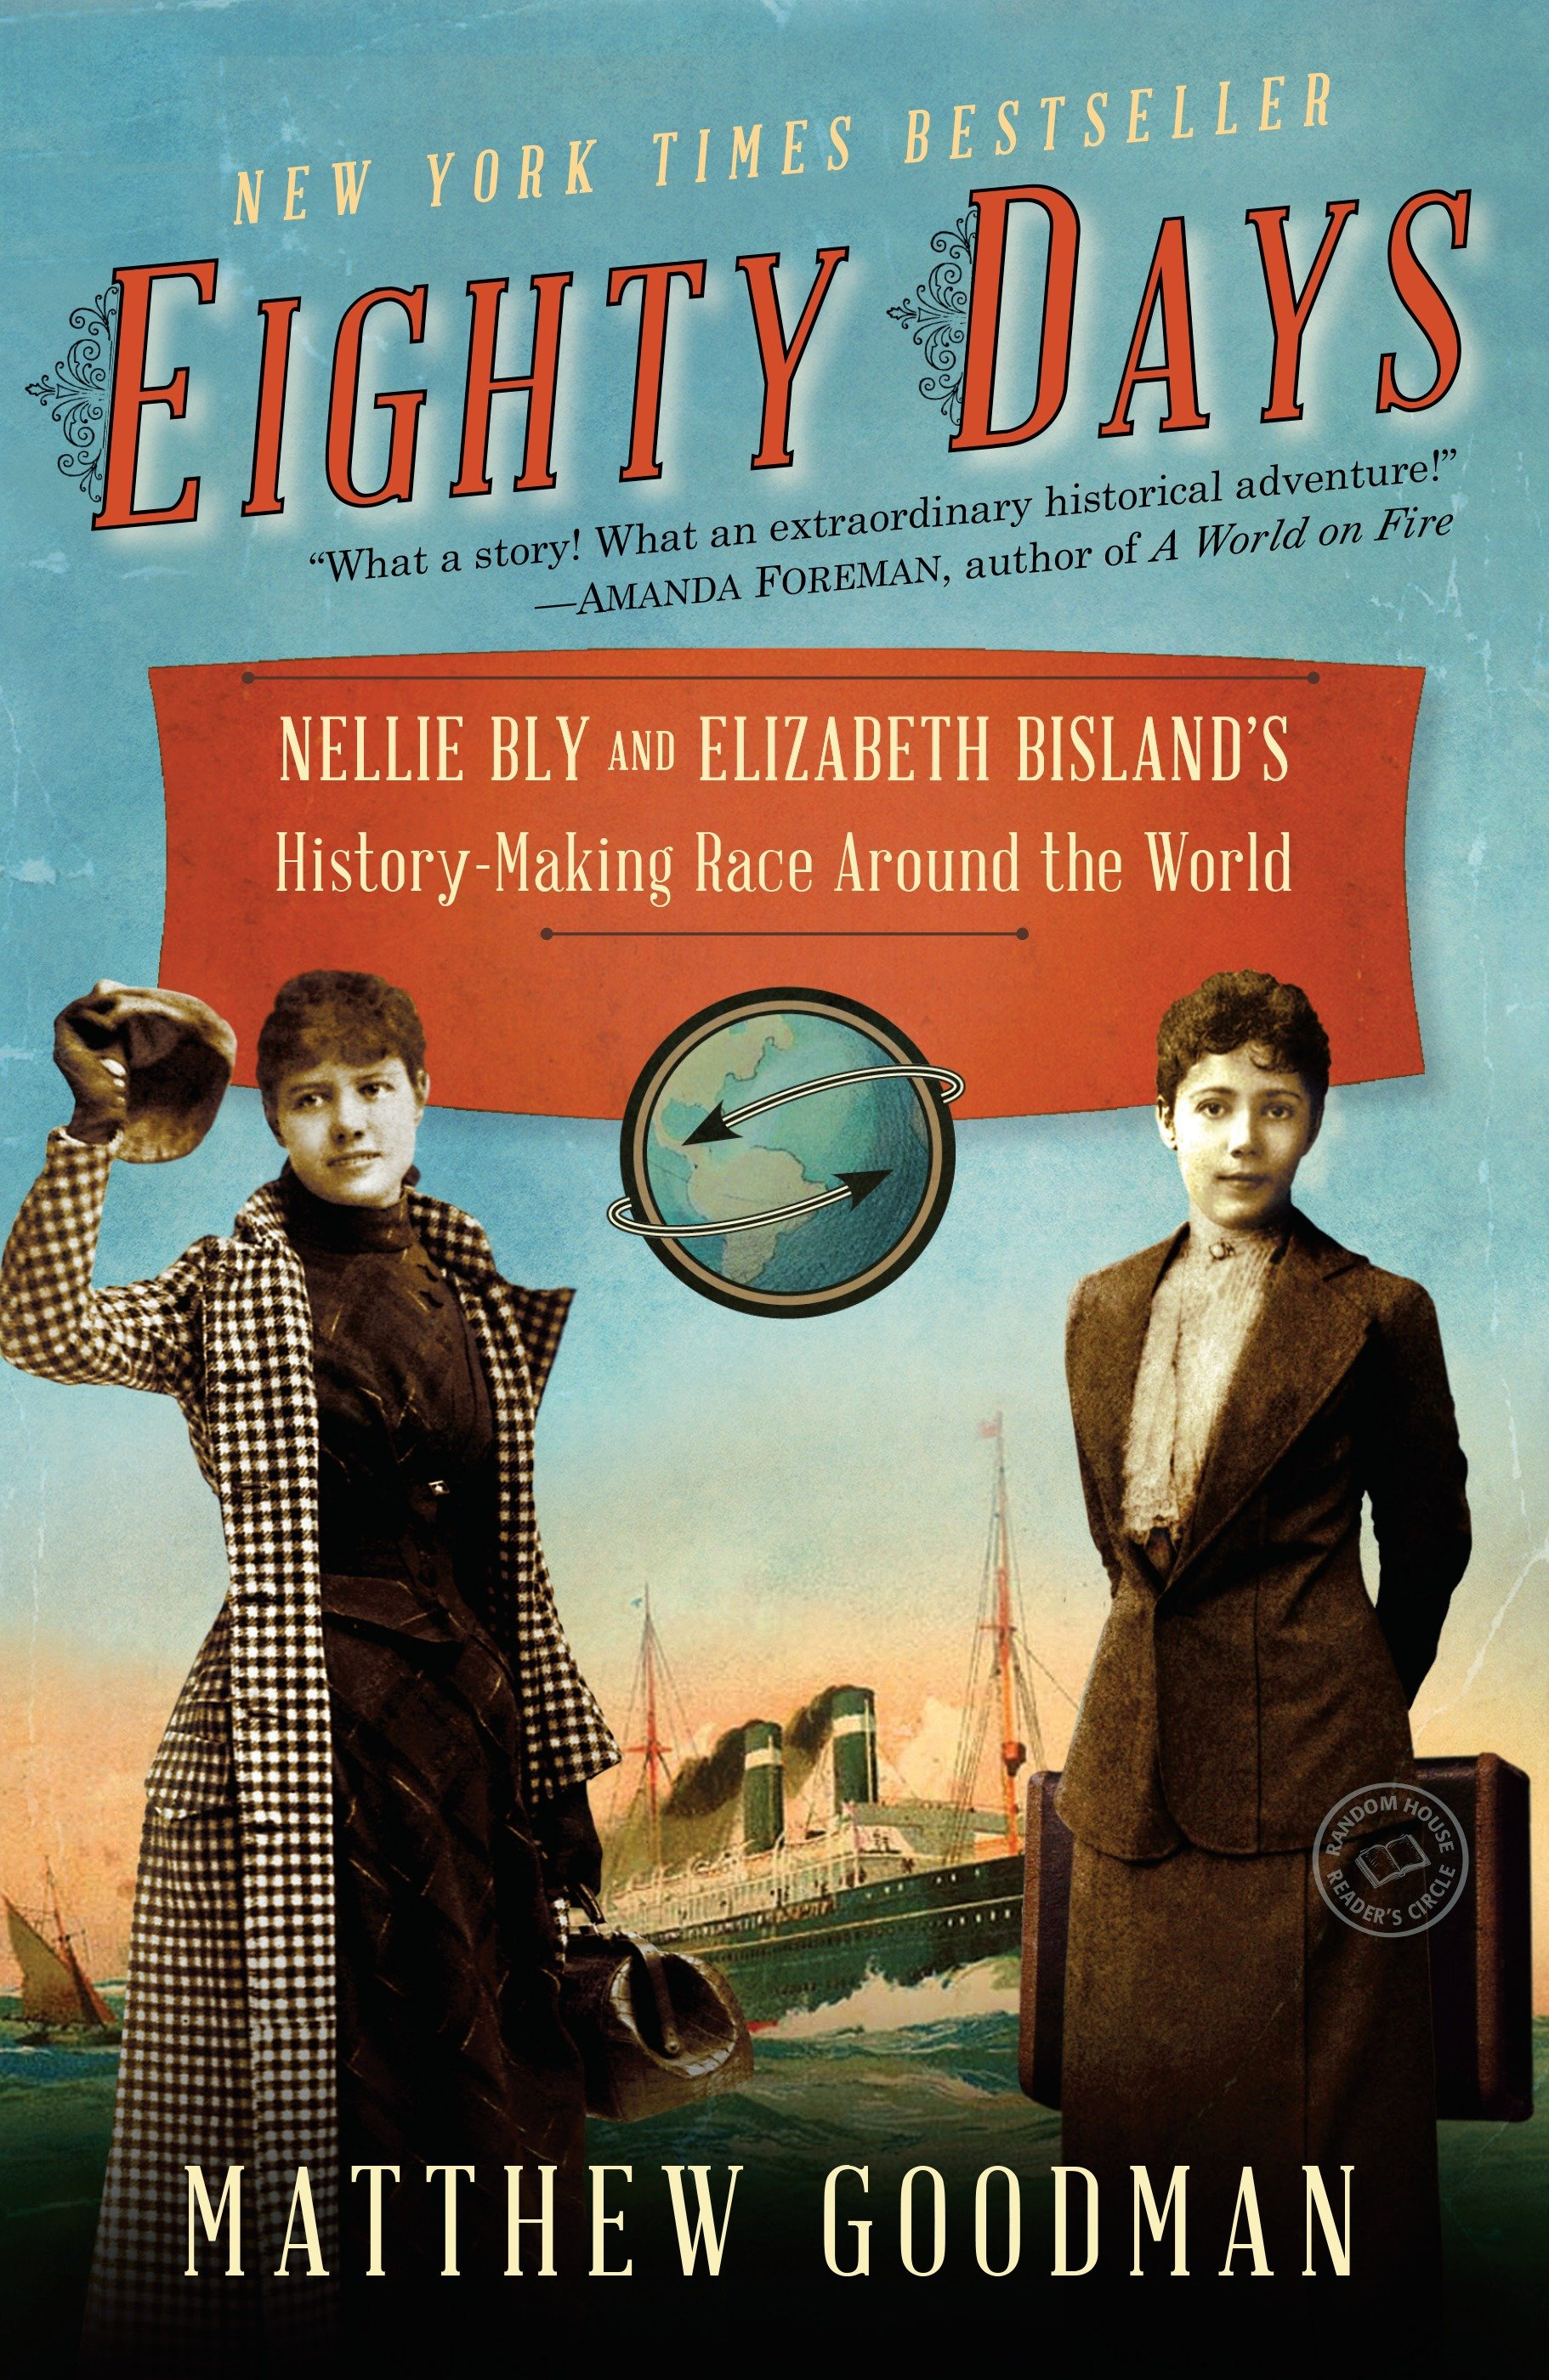 Eighty days Nellie Bly and Elizabeth Bisland's history-making race around the world cover image